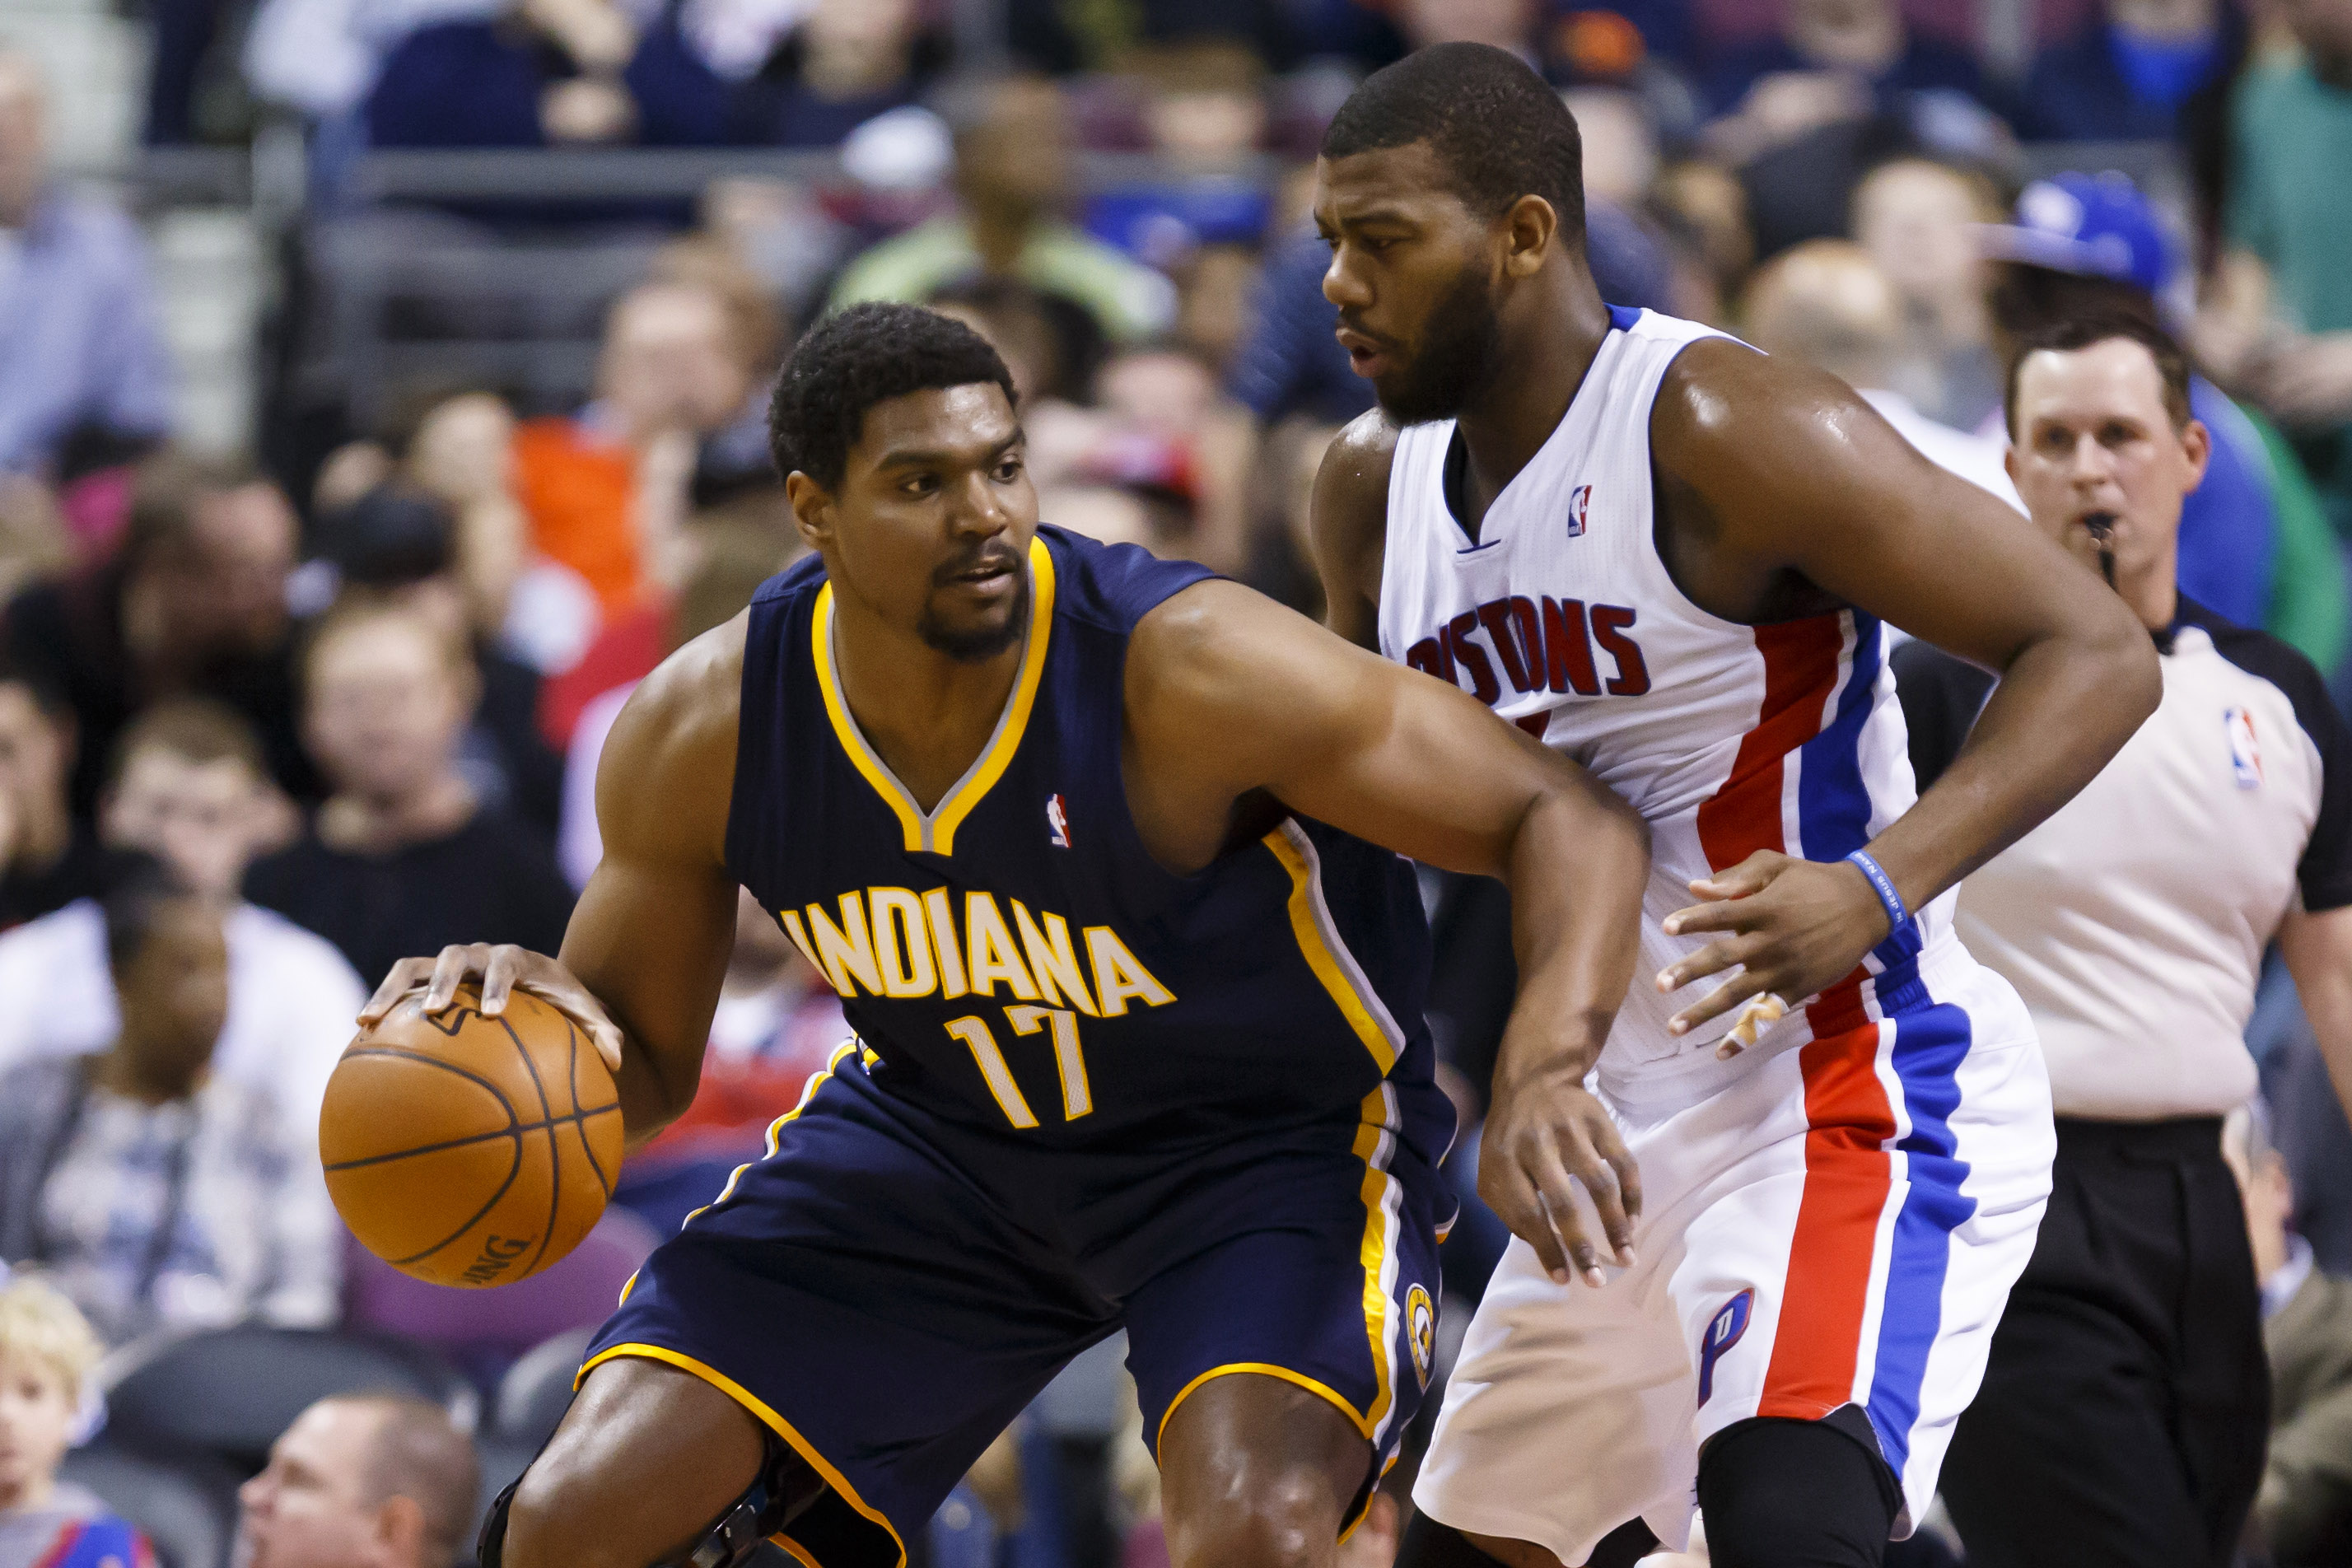 7807390-nba-indiana-pacers-at-detroit-pistons